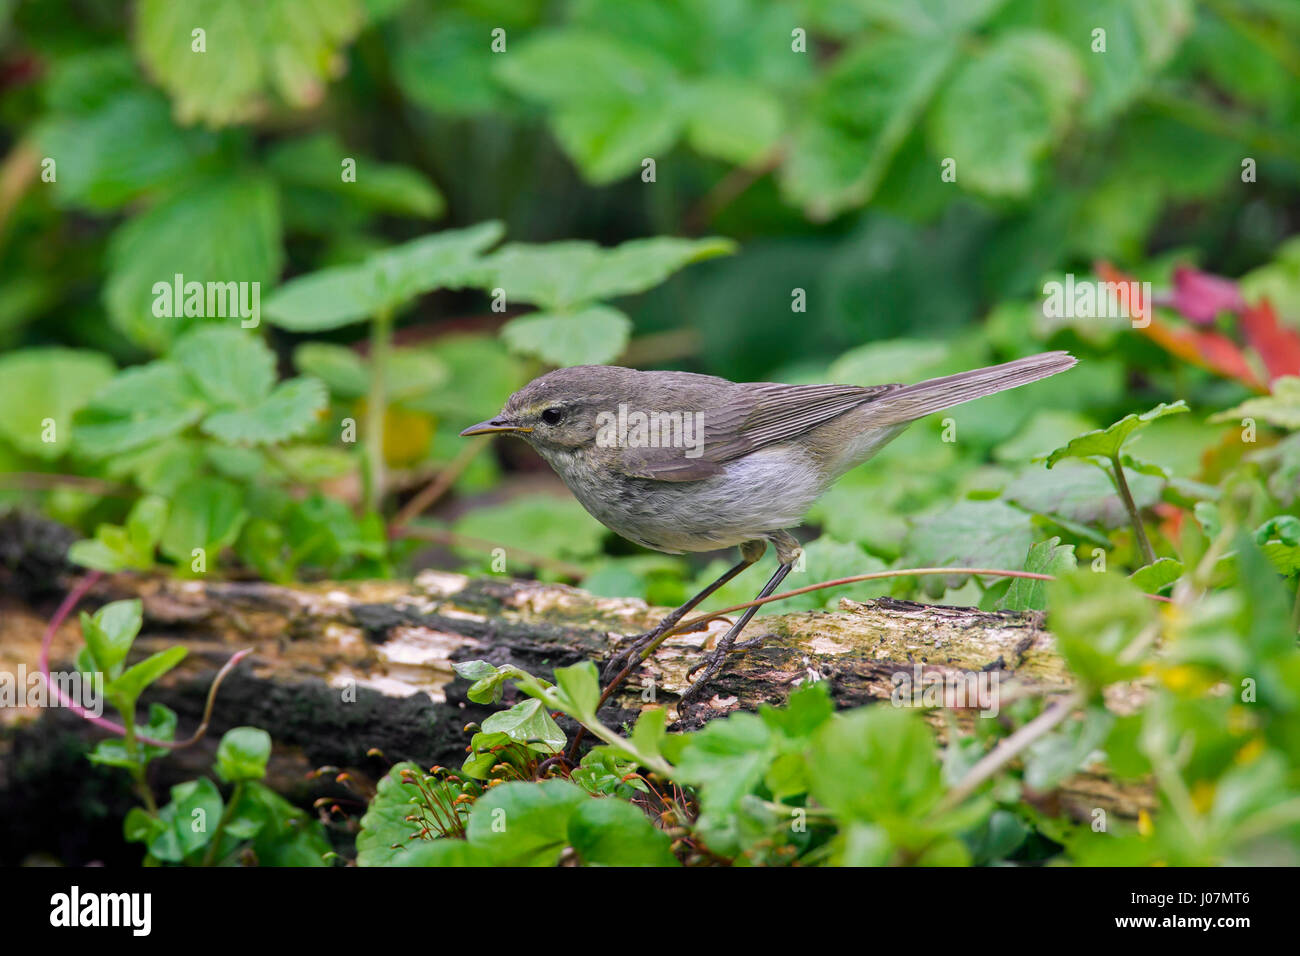 Willow warbler (Phylloscopus trochilus) perched on tree stump Stock Photo